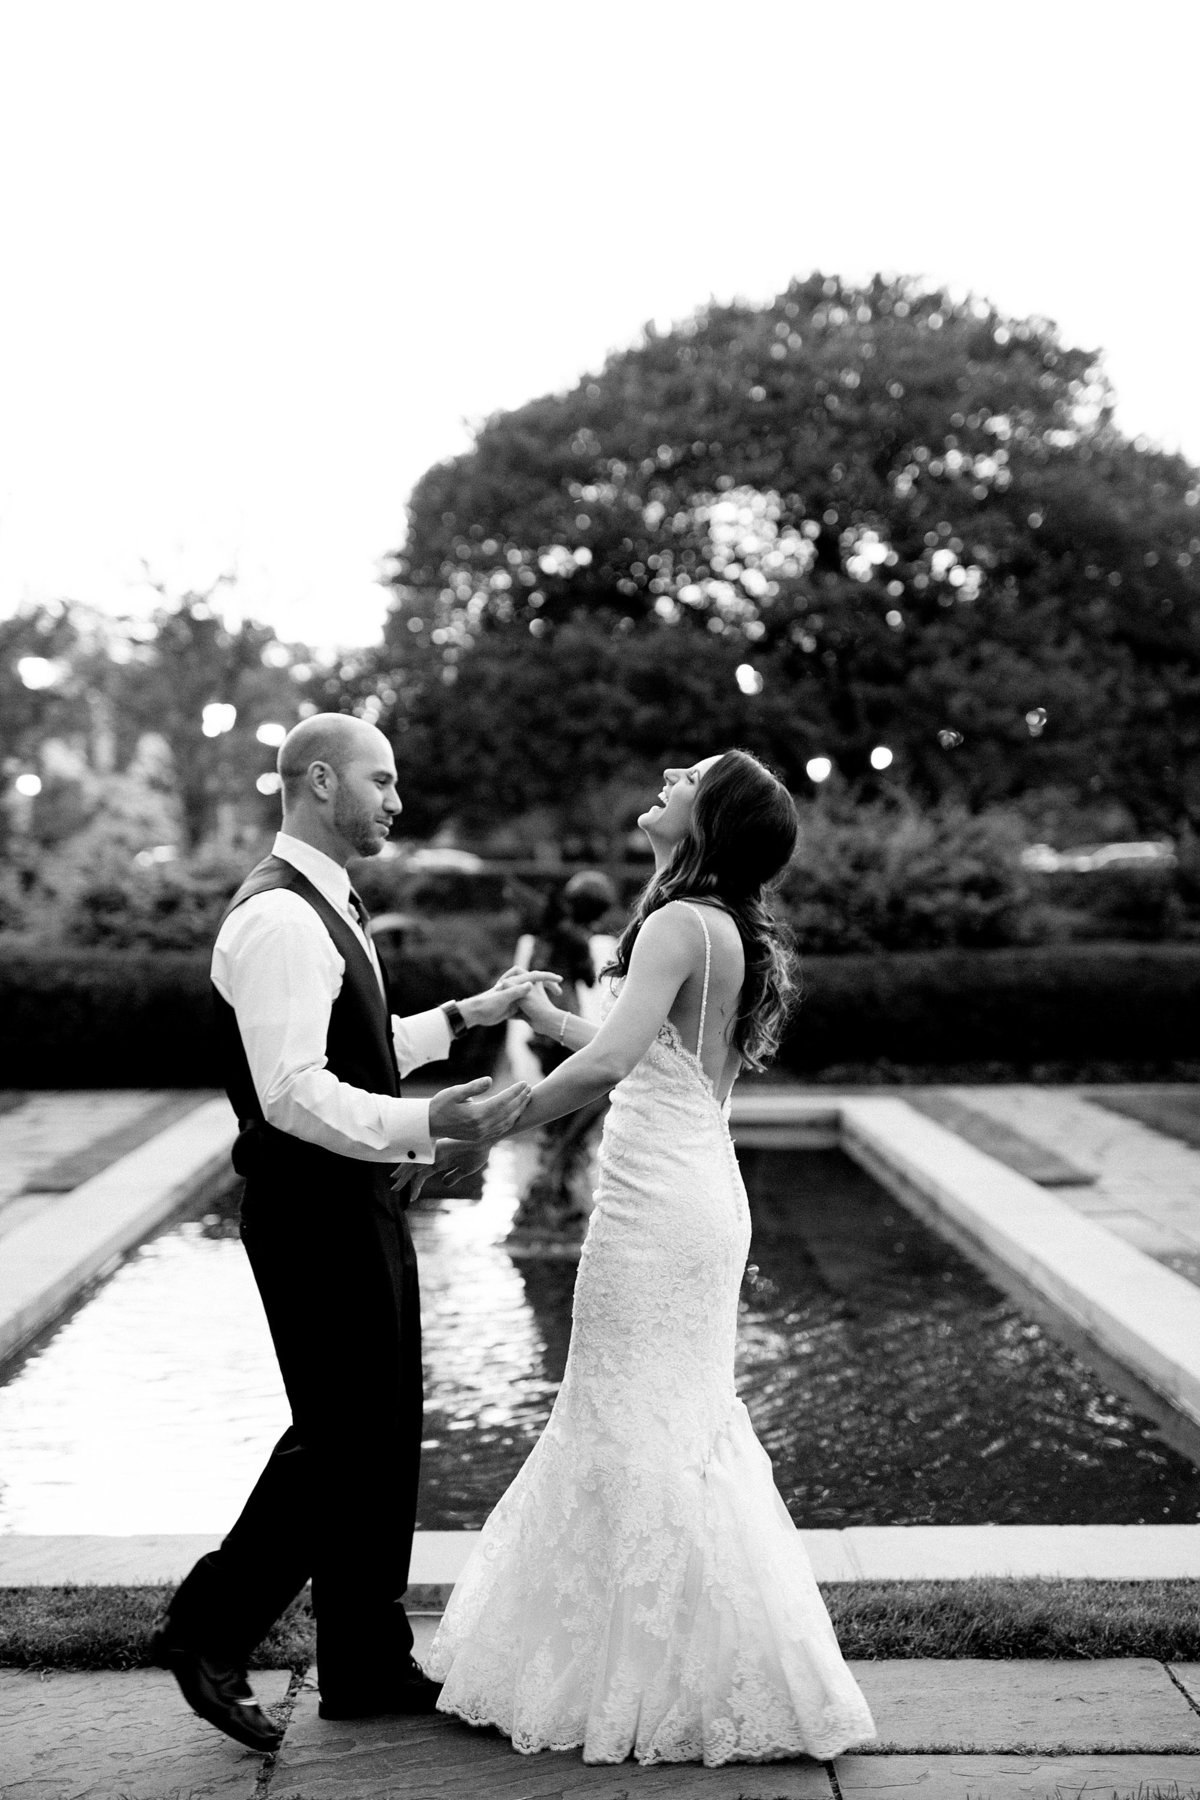 Shuster-Wedding-Grosse-Pointe-War-Memorial-Breanne-Rochelle-Photography152